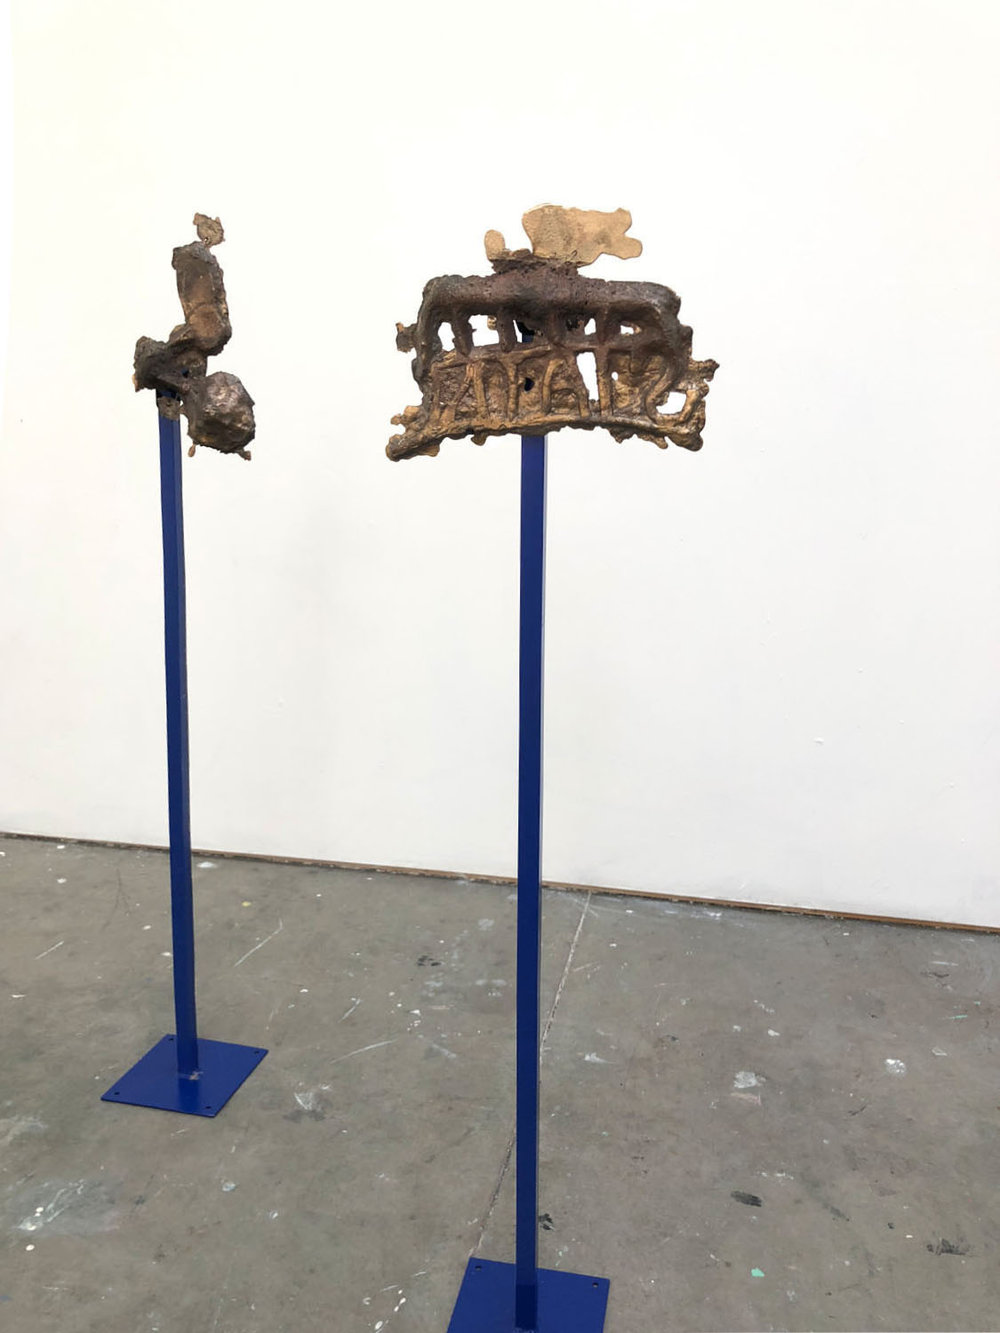 Throat and Ear  (instrument) ,  2018, bronze, painted steel, 45 x 10 x 12 inches  Stain Traveling Backwards  (instrument) ,  2018, bronze, painted steel, 46 x 13 x 12 inches